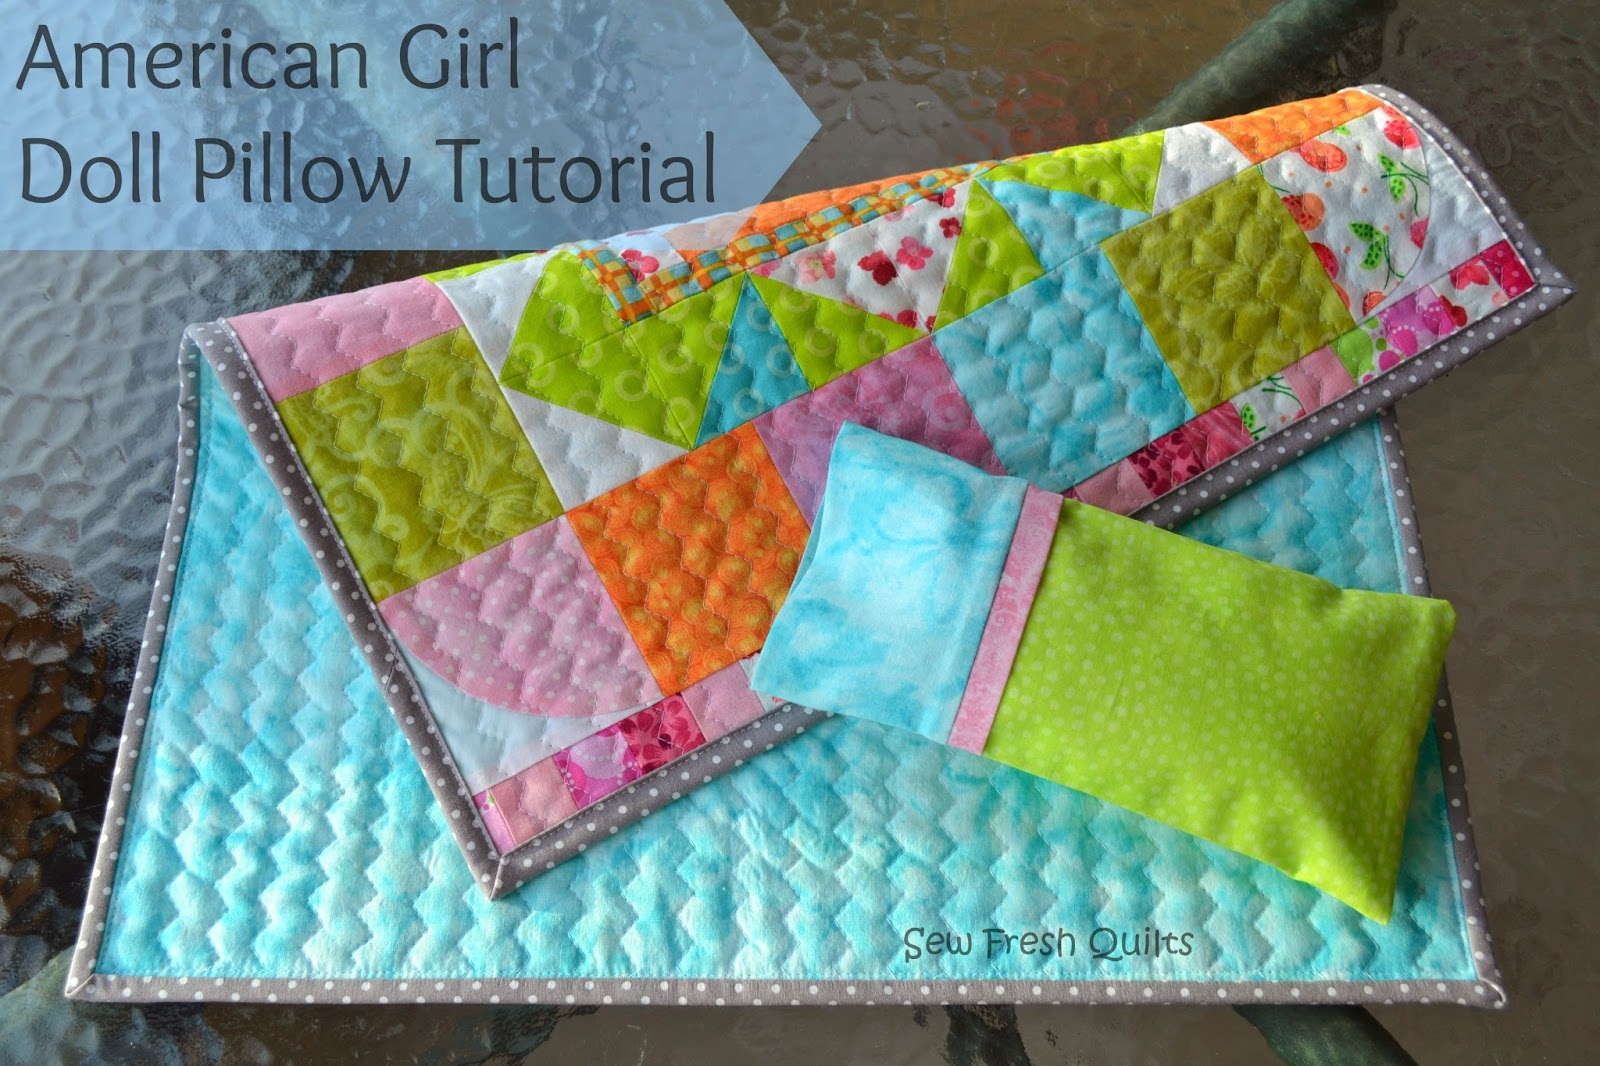 American Girl Doll Pillow tutorial